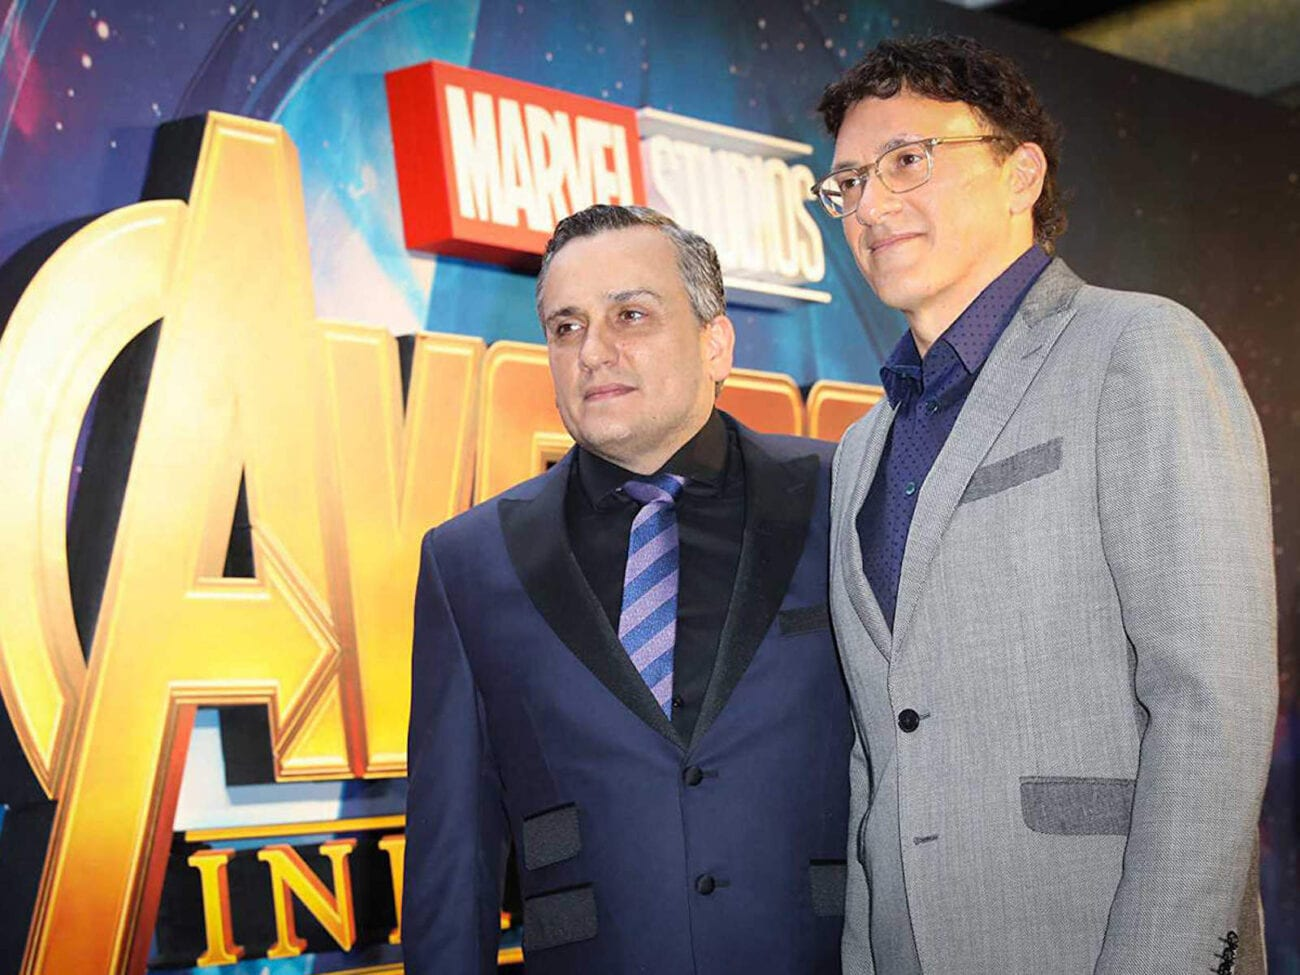 Are the Russo brothers, renowned MCU directors, receiving generous funds from terrorist organizations? Delve into the rumors right here.